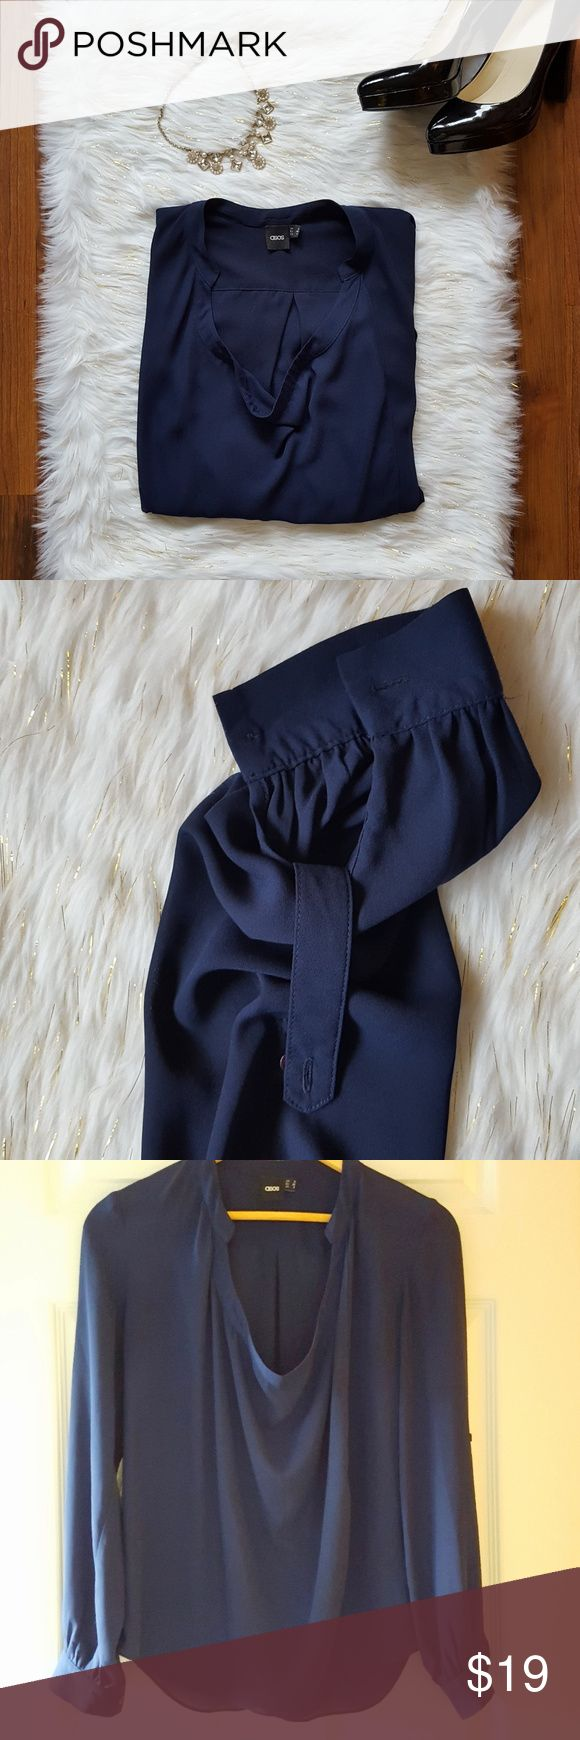 """asos career blouse long-sleeve navy blue size 4 Asos navy blue career blouse size 4. Gorgeous rich blue with convertible sleeves.   Approximate measurements lying flat:  Bust: 19"""" Length:24"""" 100% polyester Smoke-free home   -Reasonable offers welcome, but prices are firm on items under $10.  -No trades, please.  💕💕💕Thank you for shopping my closet, it means a lot to me!💕💕💕 ASOS Tops Blouses"""